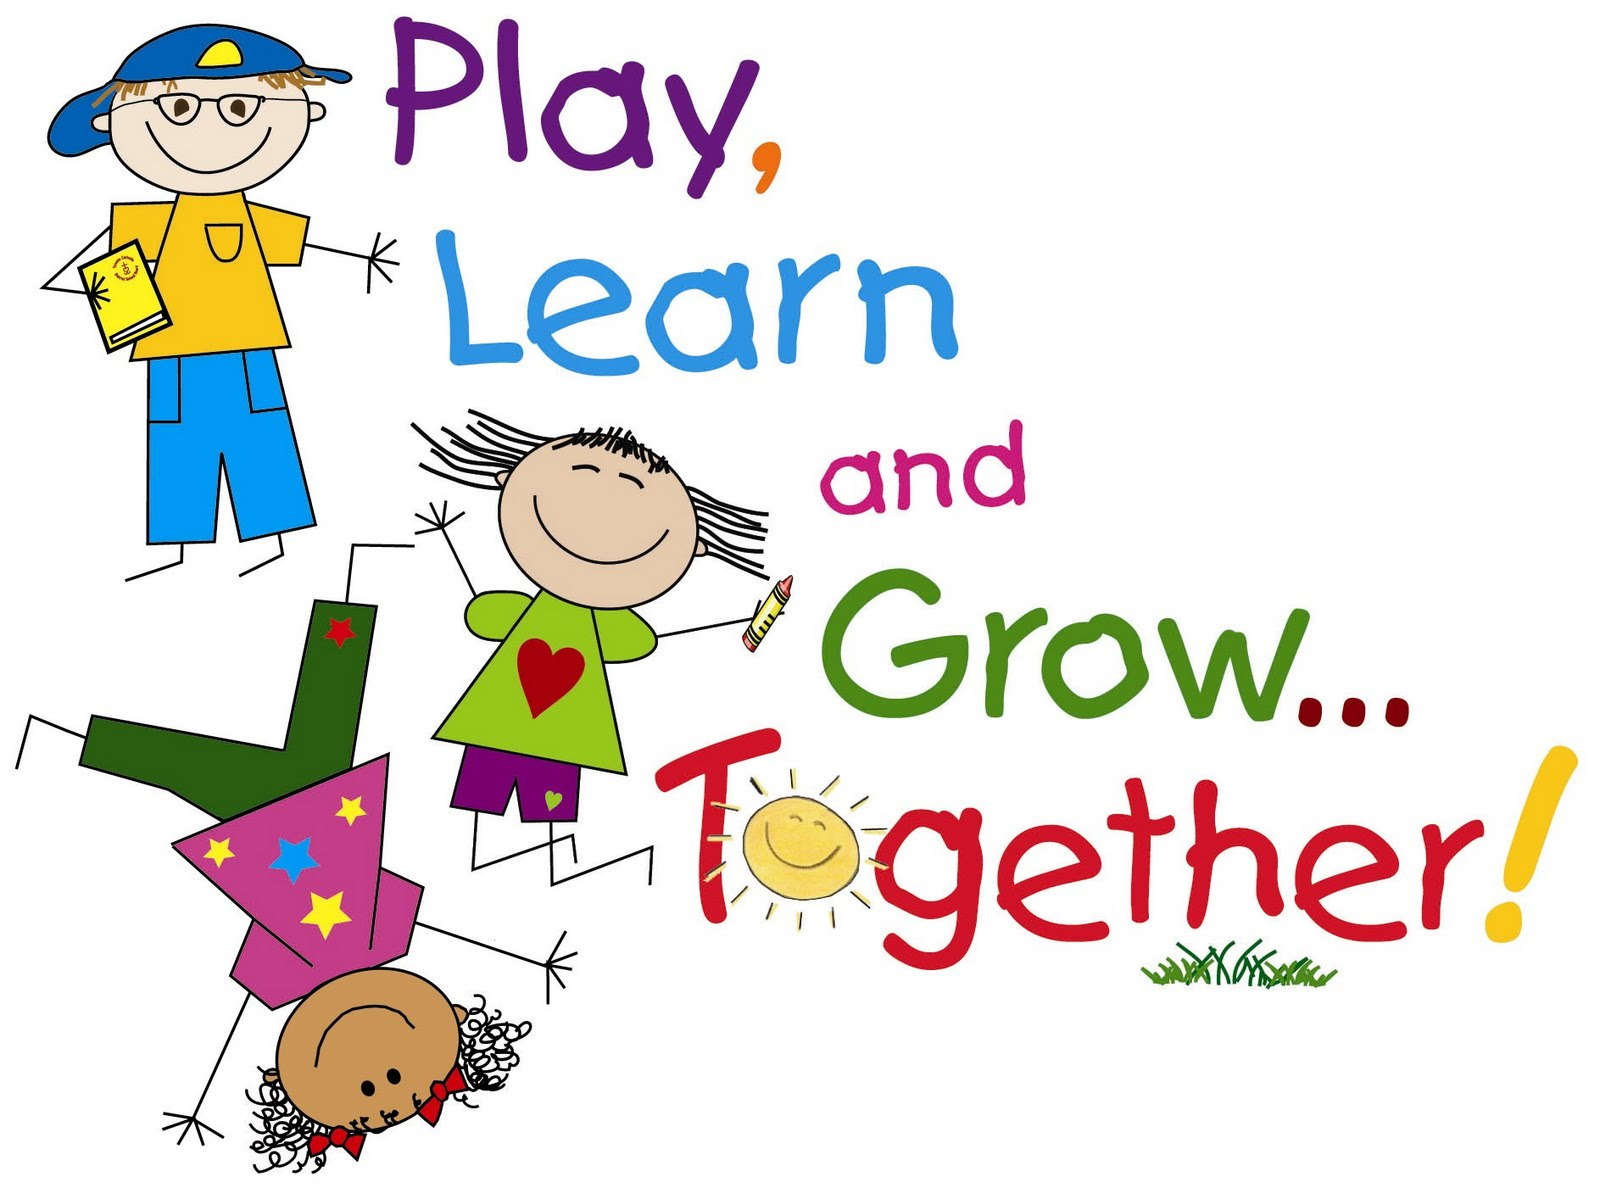 Kindergarten readiness clipart picture royalty free download Kindergarten readiness clipart - ClipartFest picture royalty free download